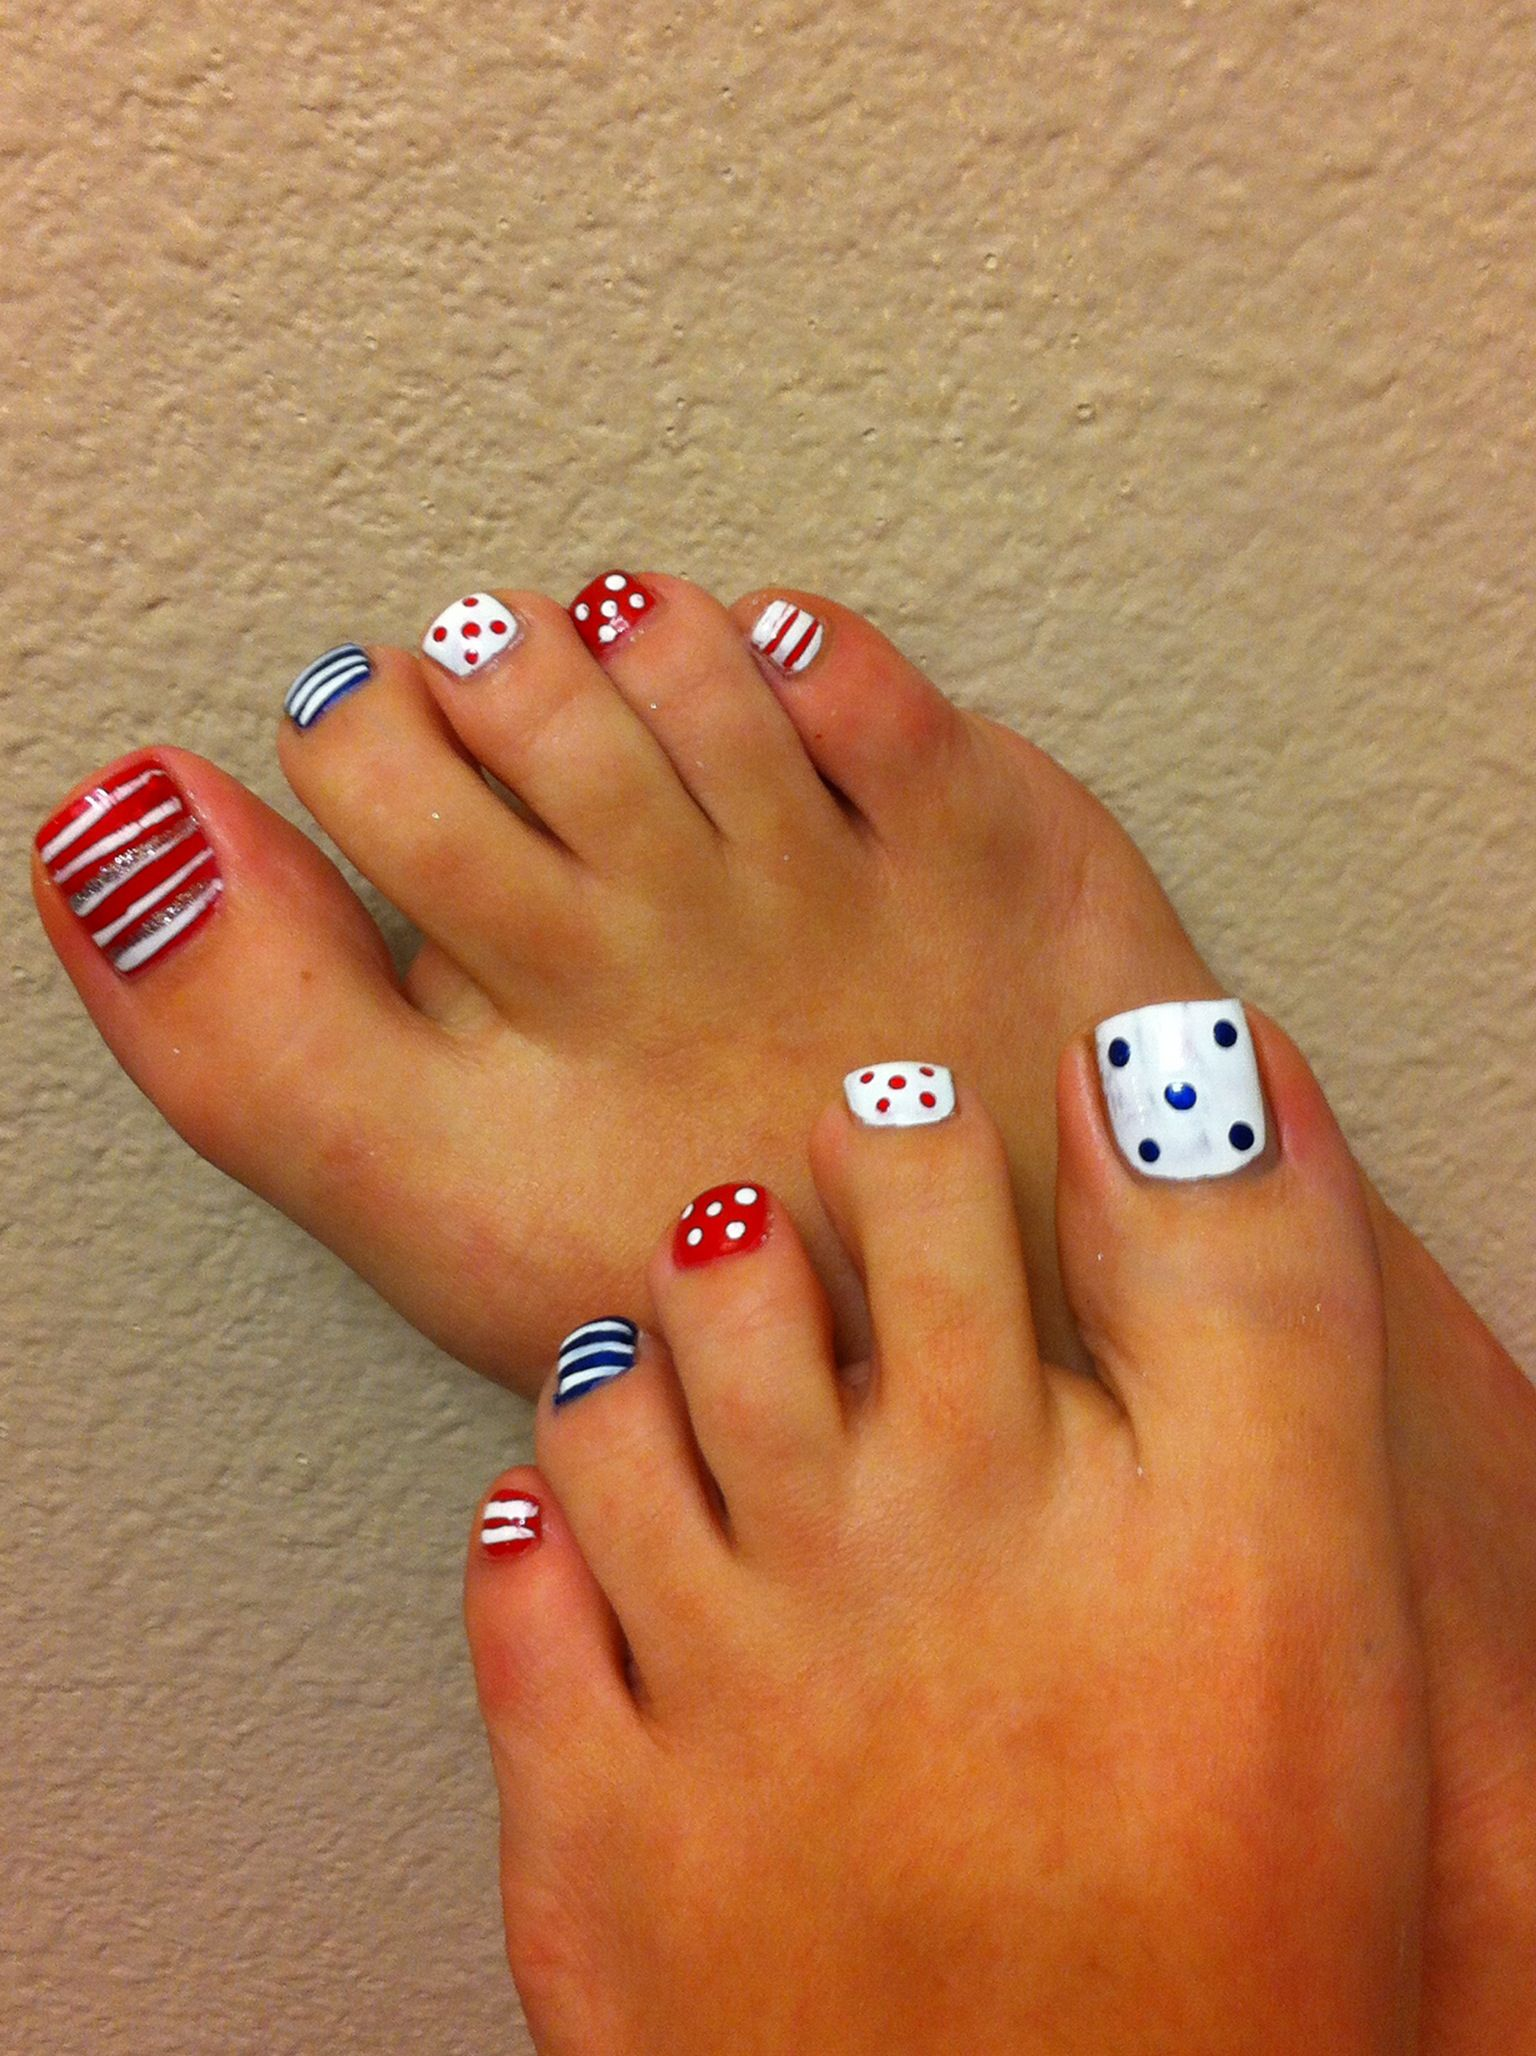 Pin By Severine Guesdon On Pedicures Cute Pedicures Toe Nail Designs Toe Nails